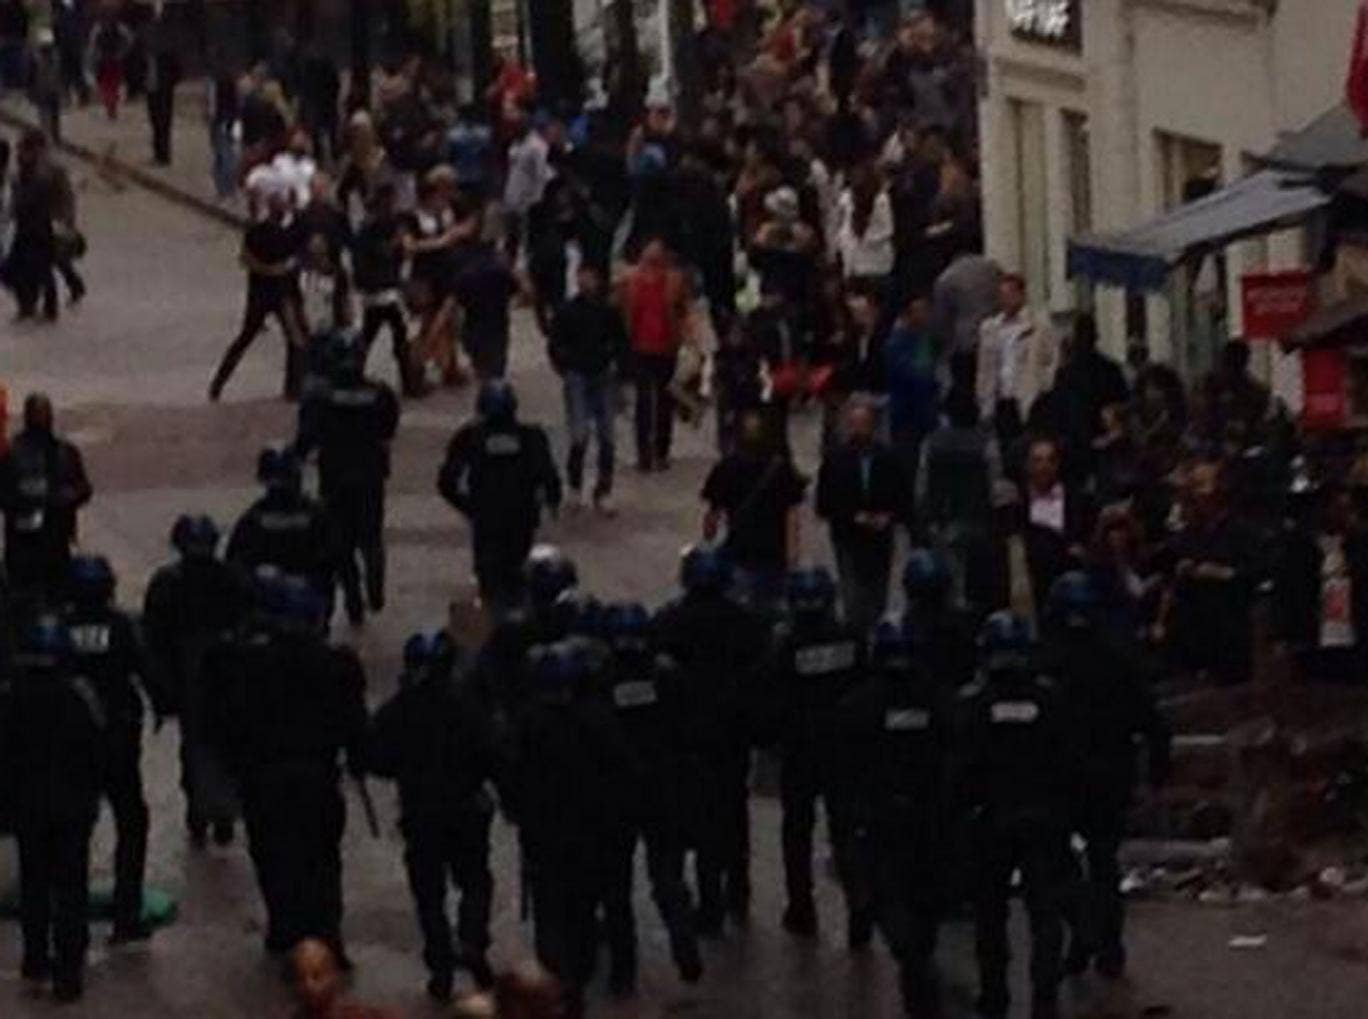 Police arrive at the scene in Paris on Wednesday afternoon